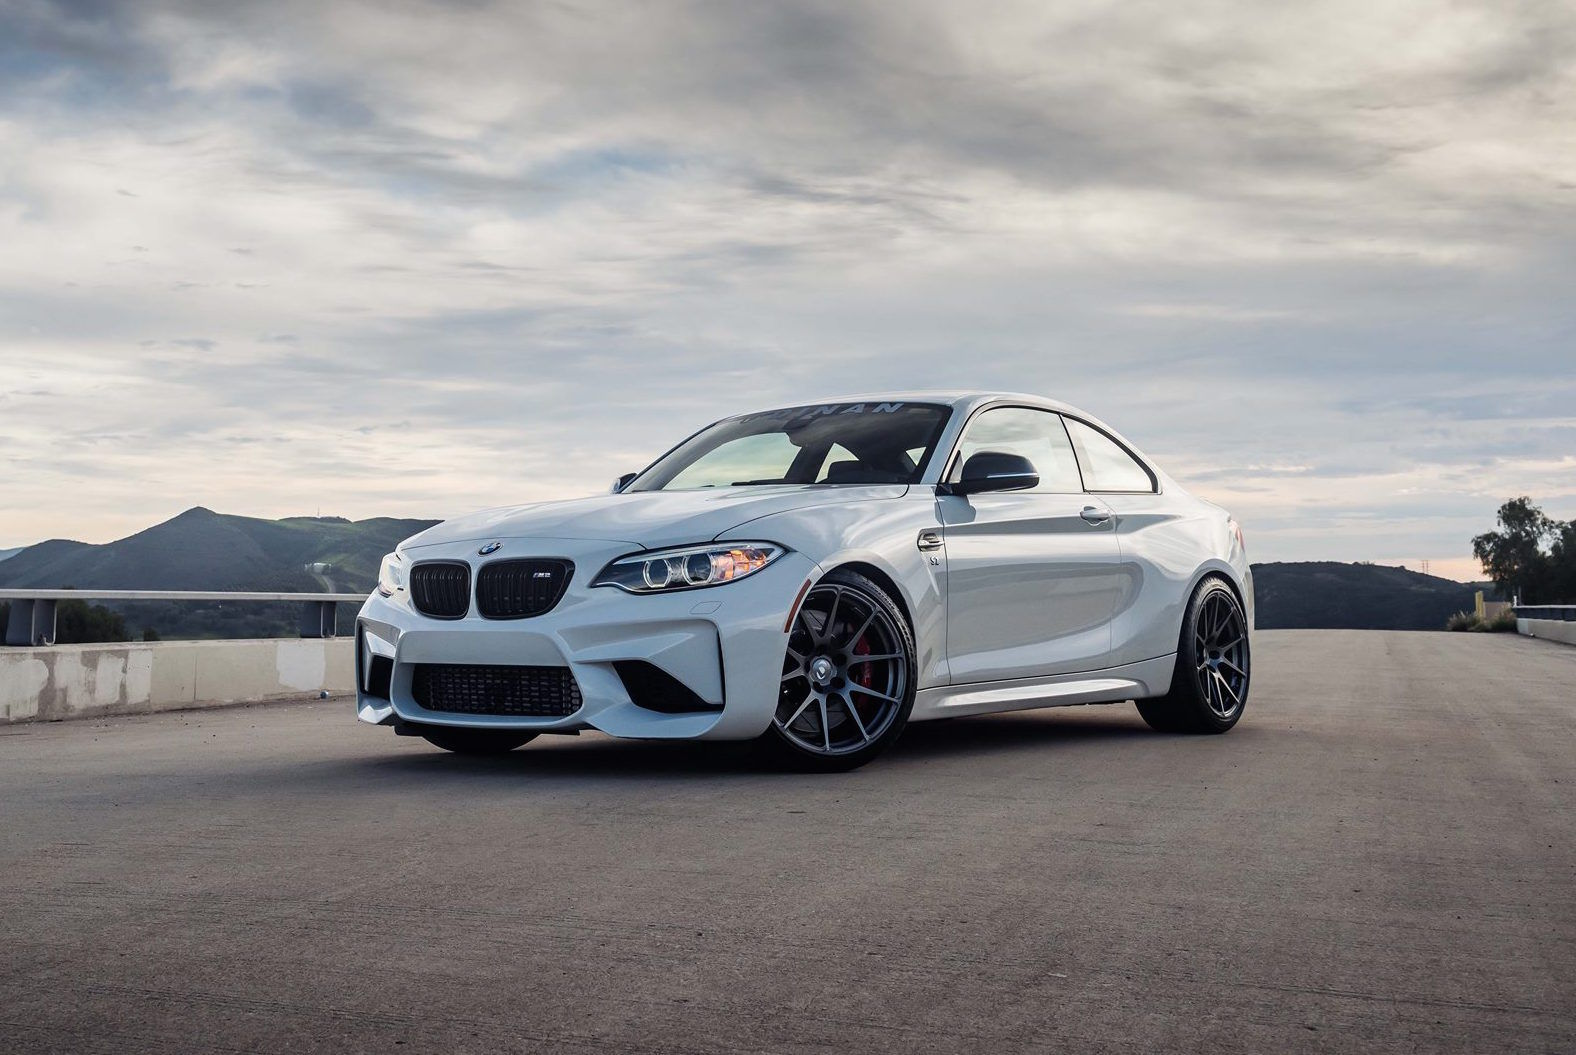 2016 BMW M2 | Dinan Engineering's 450HP BMW M2 S2 on Forgeline One Piece Forged MonoblockGA1R Wheels